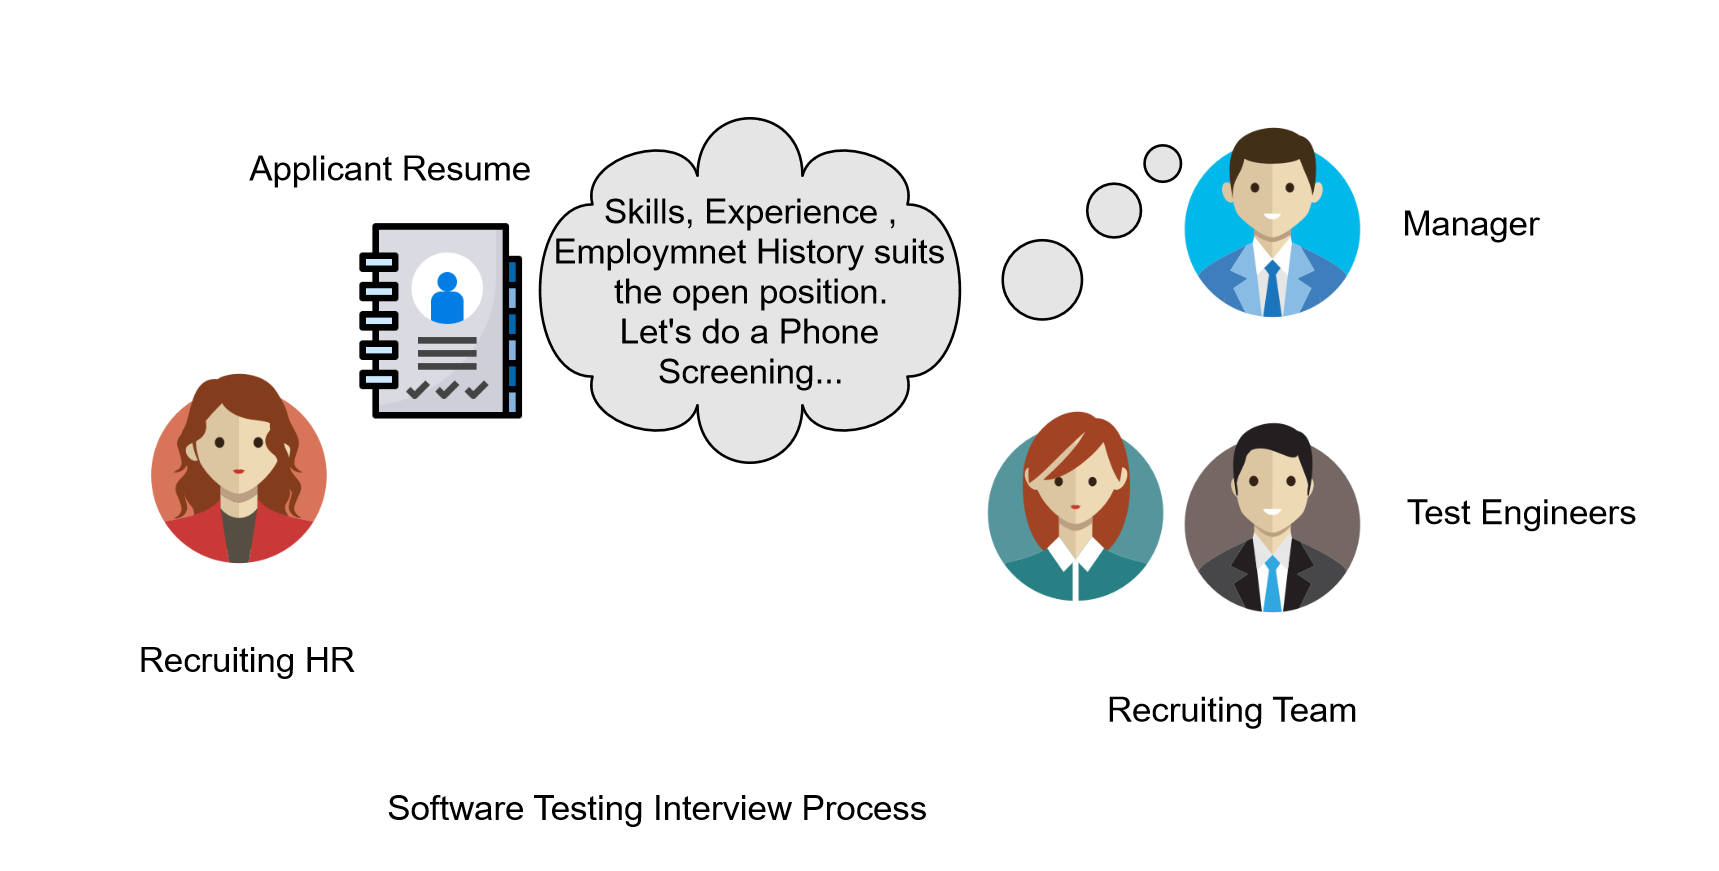 Software Testing Interview Process